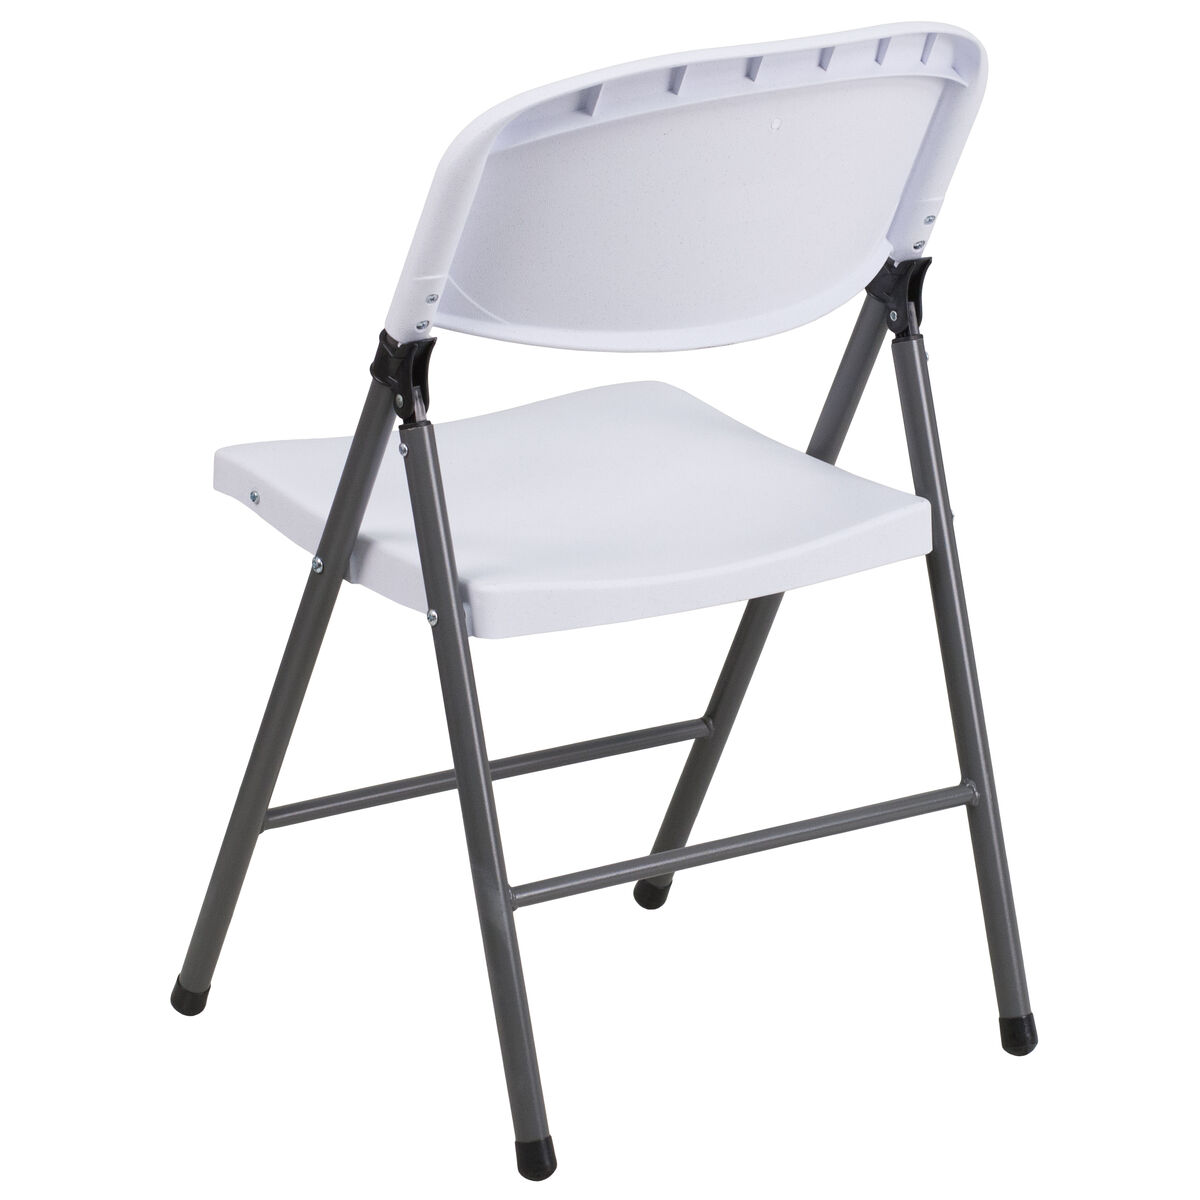 Magnificent Hercules Series 330 Lb Capacity Granite White Plastic Folding Chair With Charcoal Frame Uwap Interior Chair Design Uwaporg